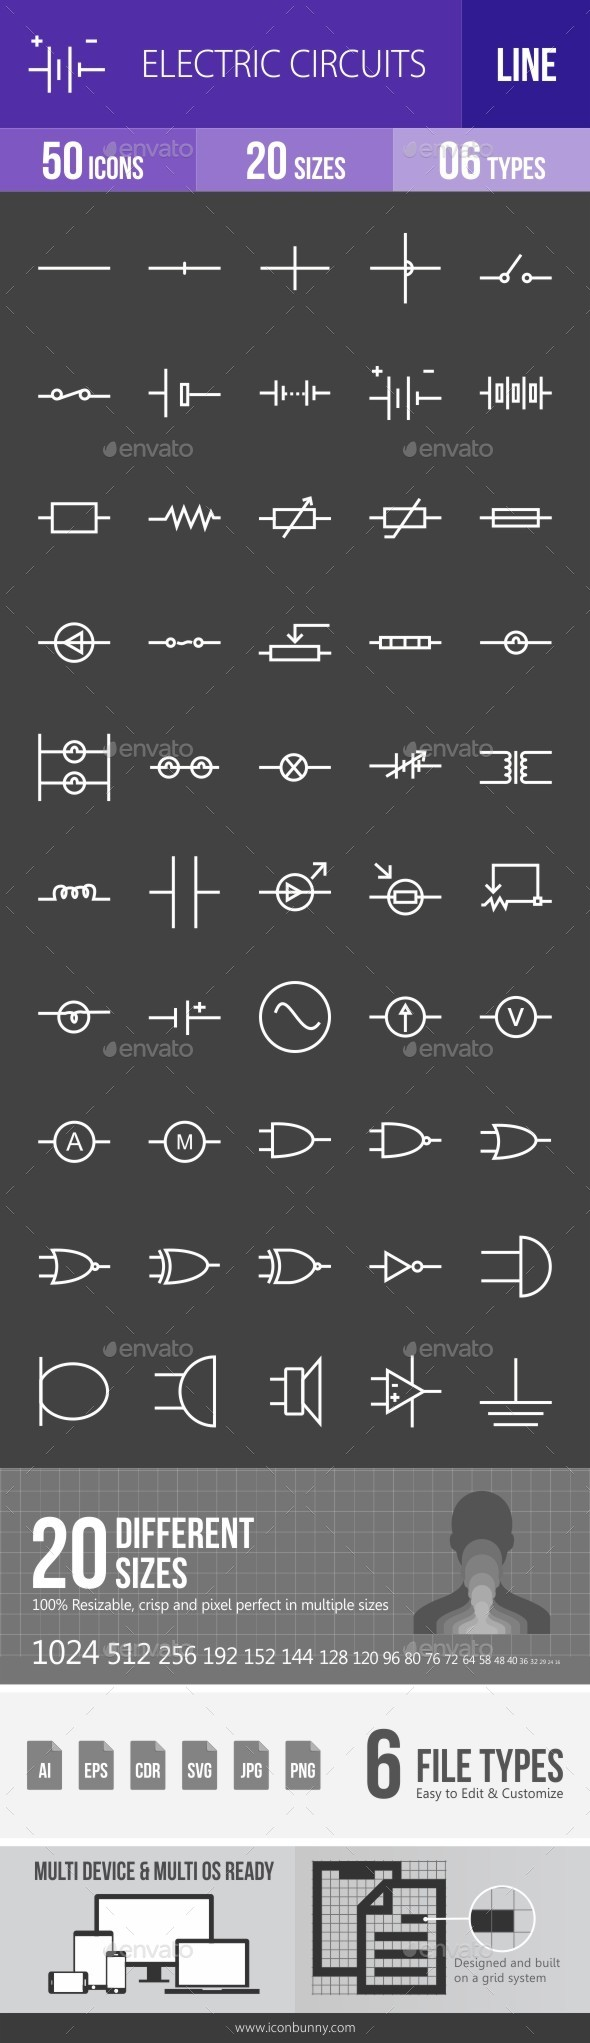 Electric Circuits Line Inverted Icons   Electric circuit, Icons and ...